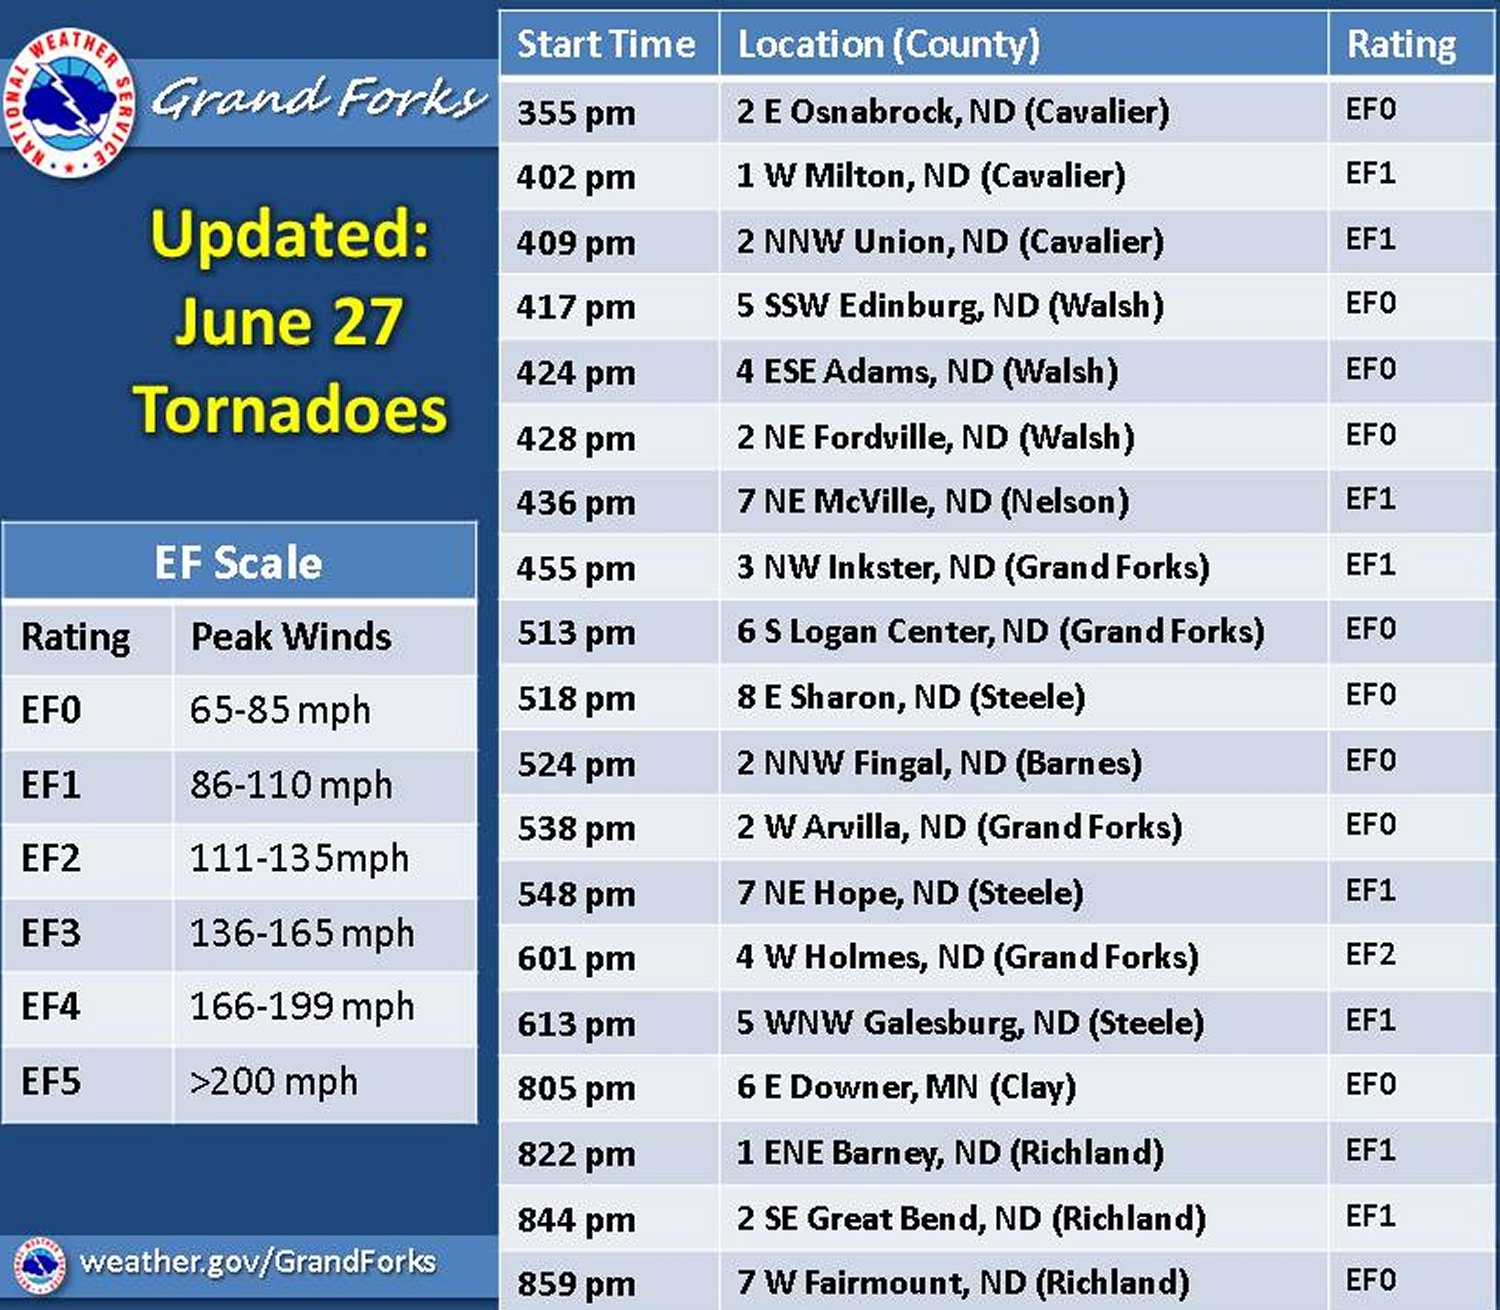 After conducting a damage survey of the area, NWS Grand Forks concluded that 19 tornadoes touched down on June 27th, 2015. (Source: NWS Grand Forks)